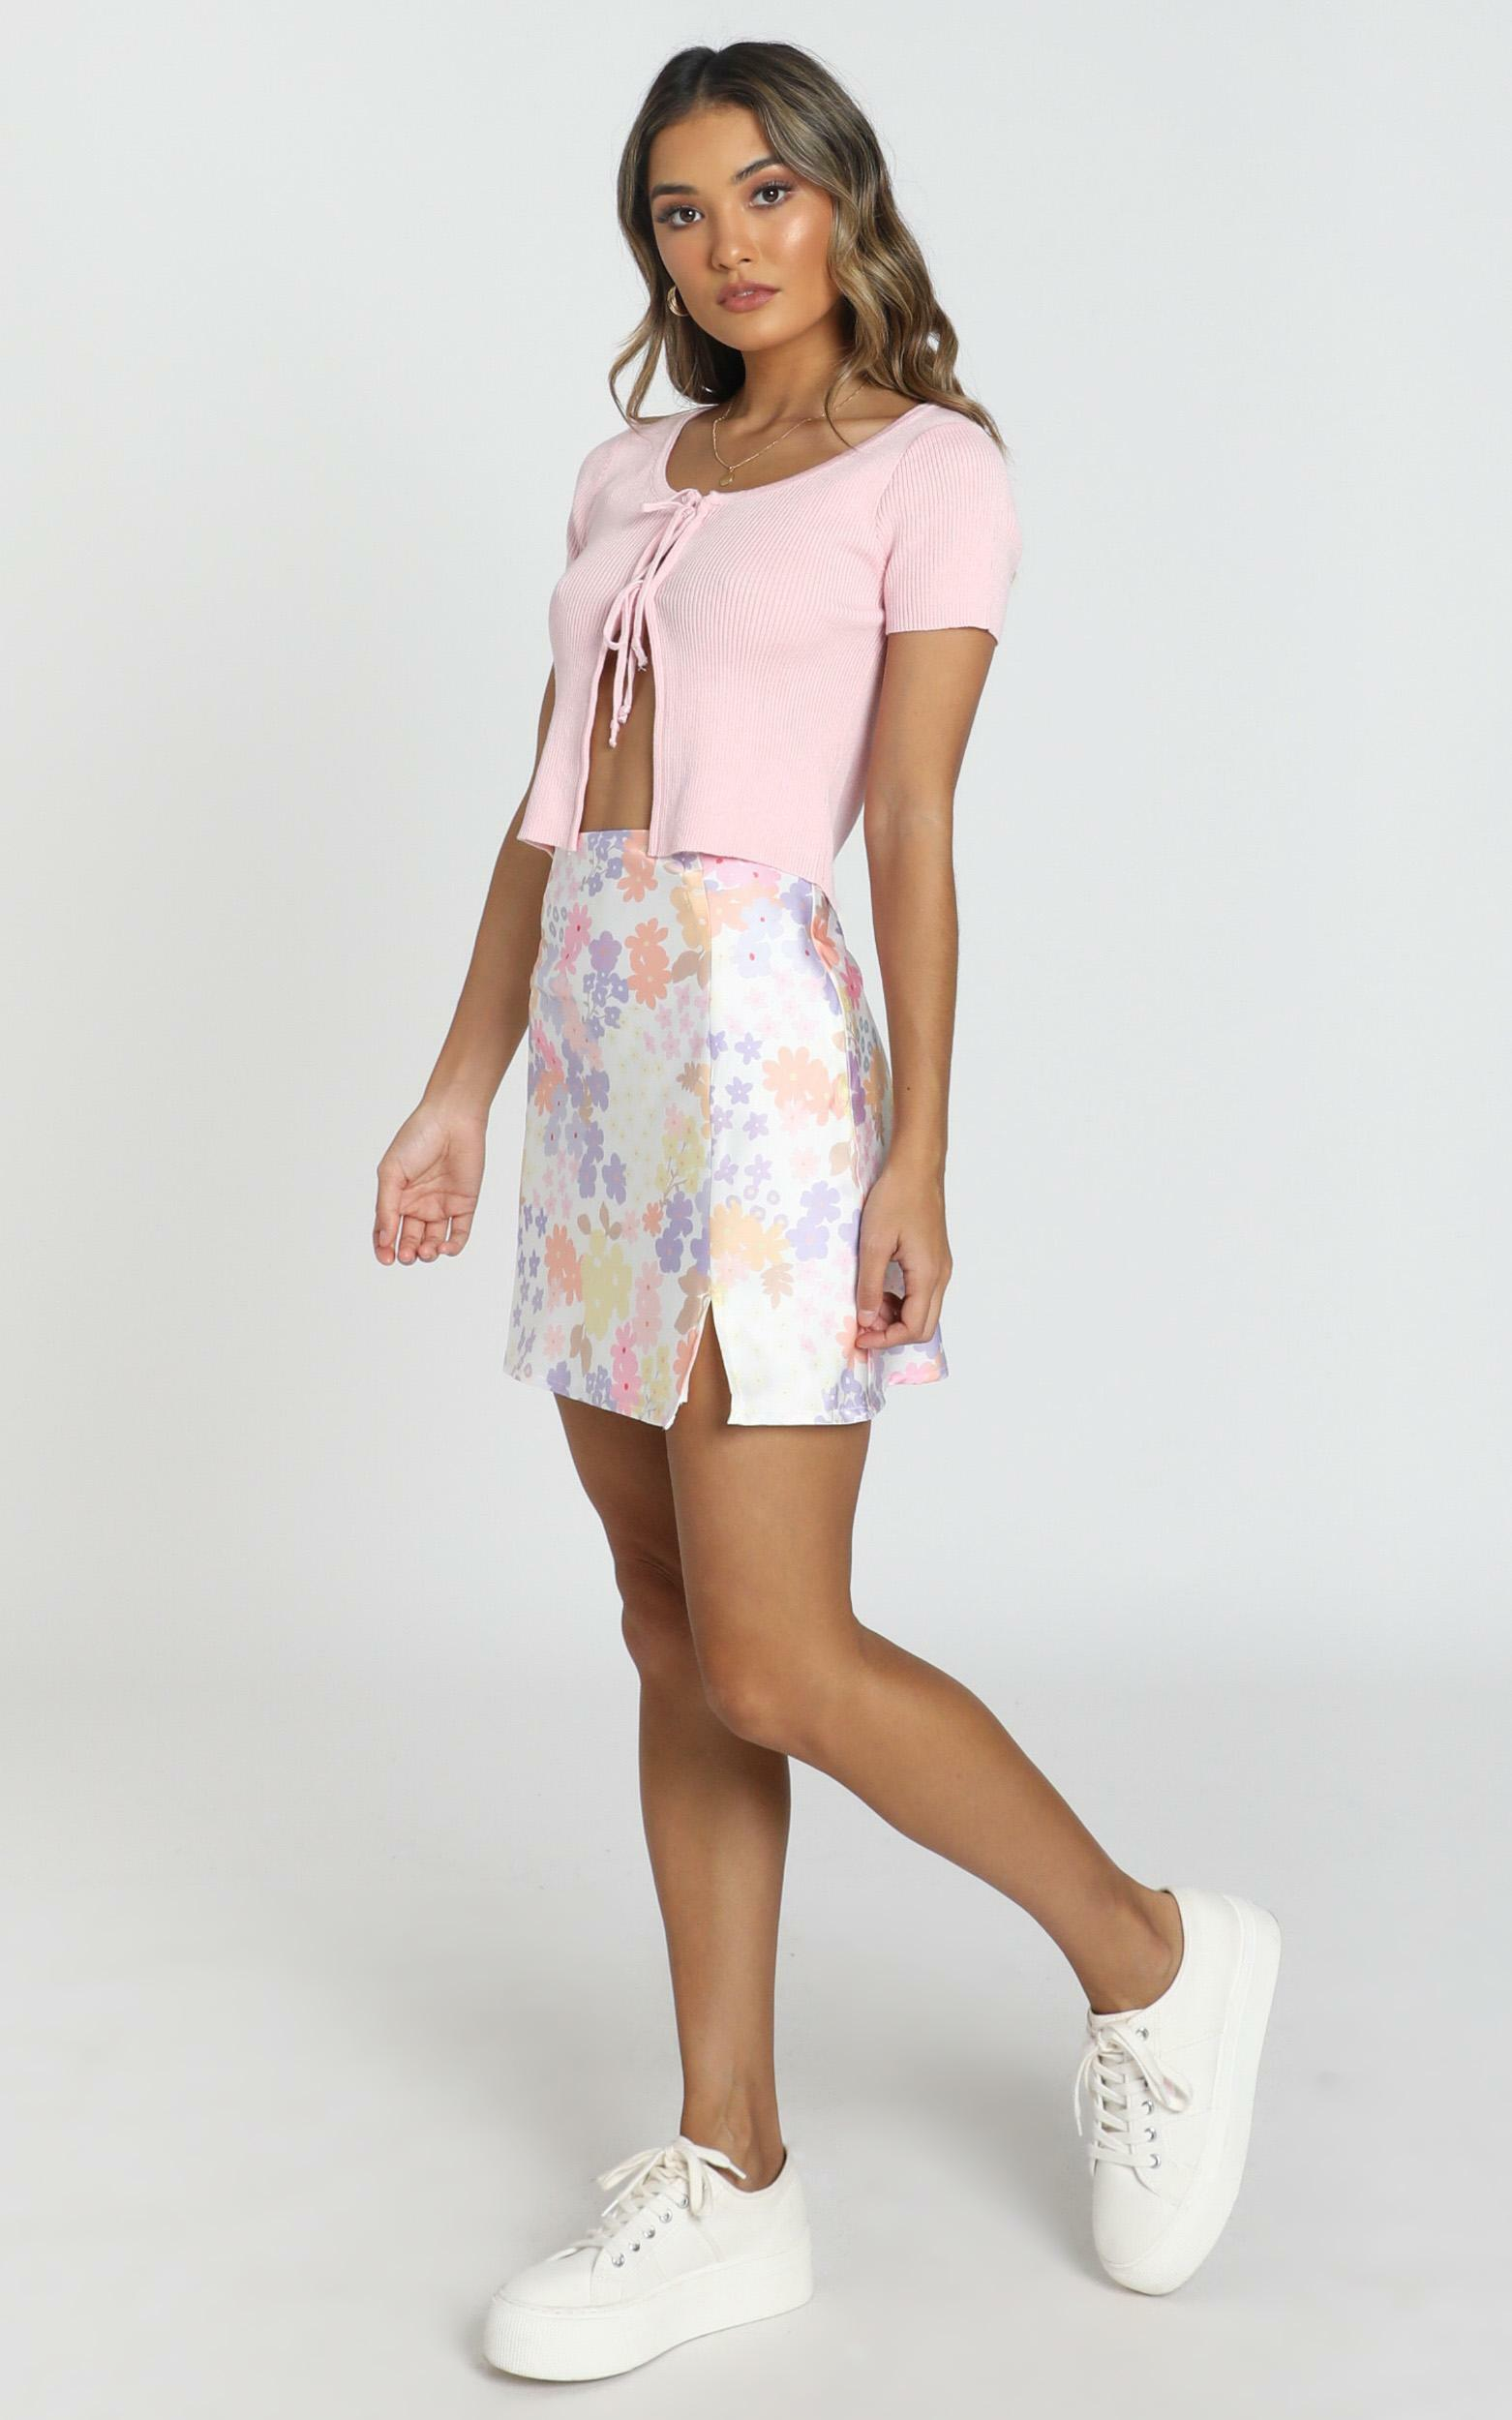 Stand In Line Skirt In white floral - 4 (XXS), White, hi-res image number null